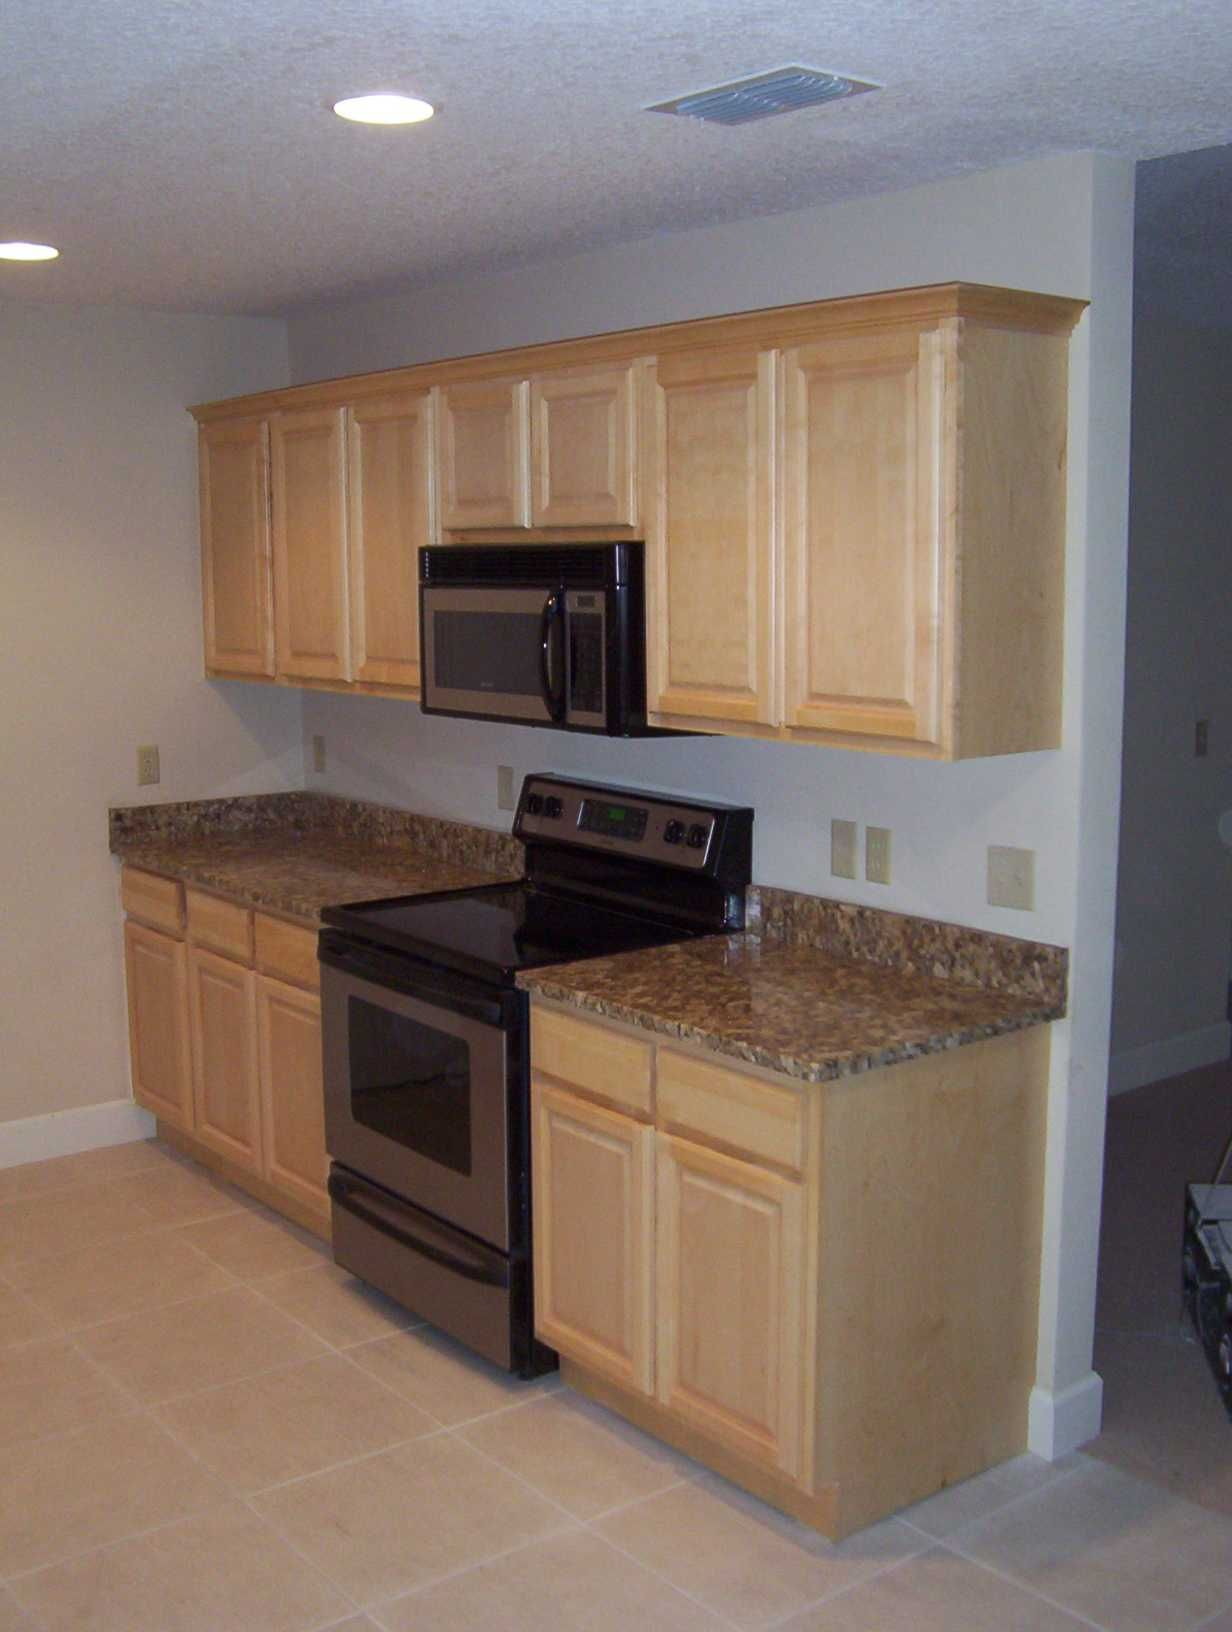 kitchens with light maple cabinets - Google Search | Maple ... on Best Countertop Color For Maple Cabinets  id=86970